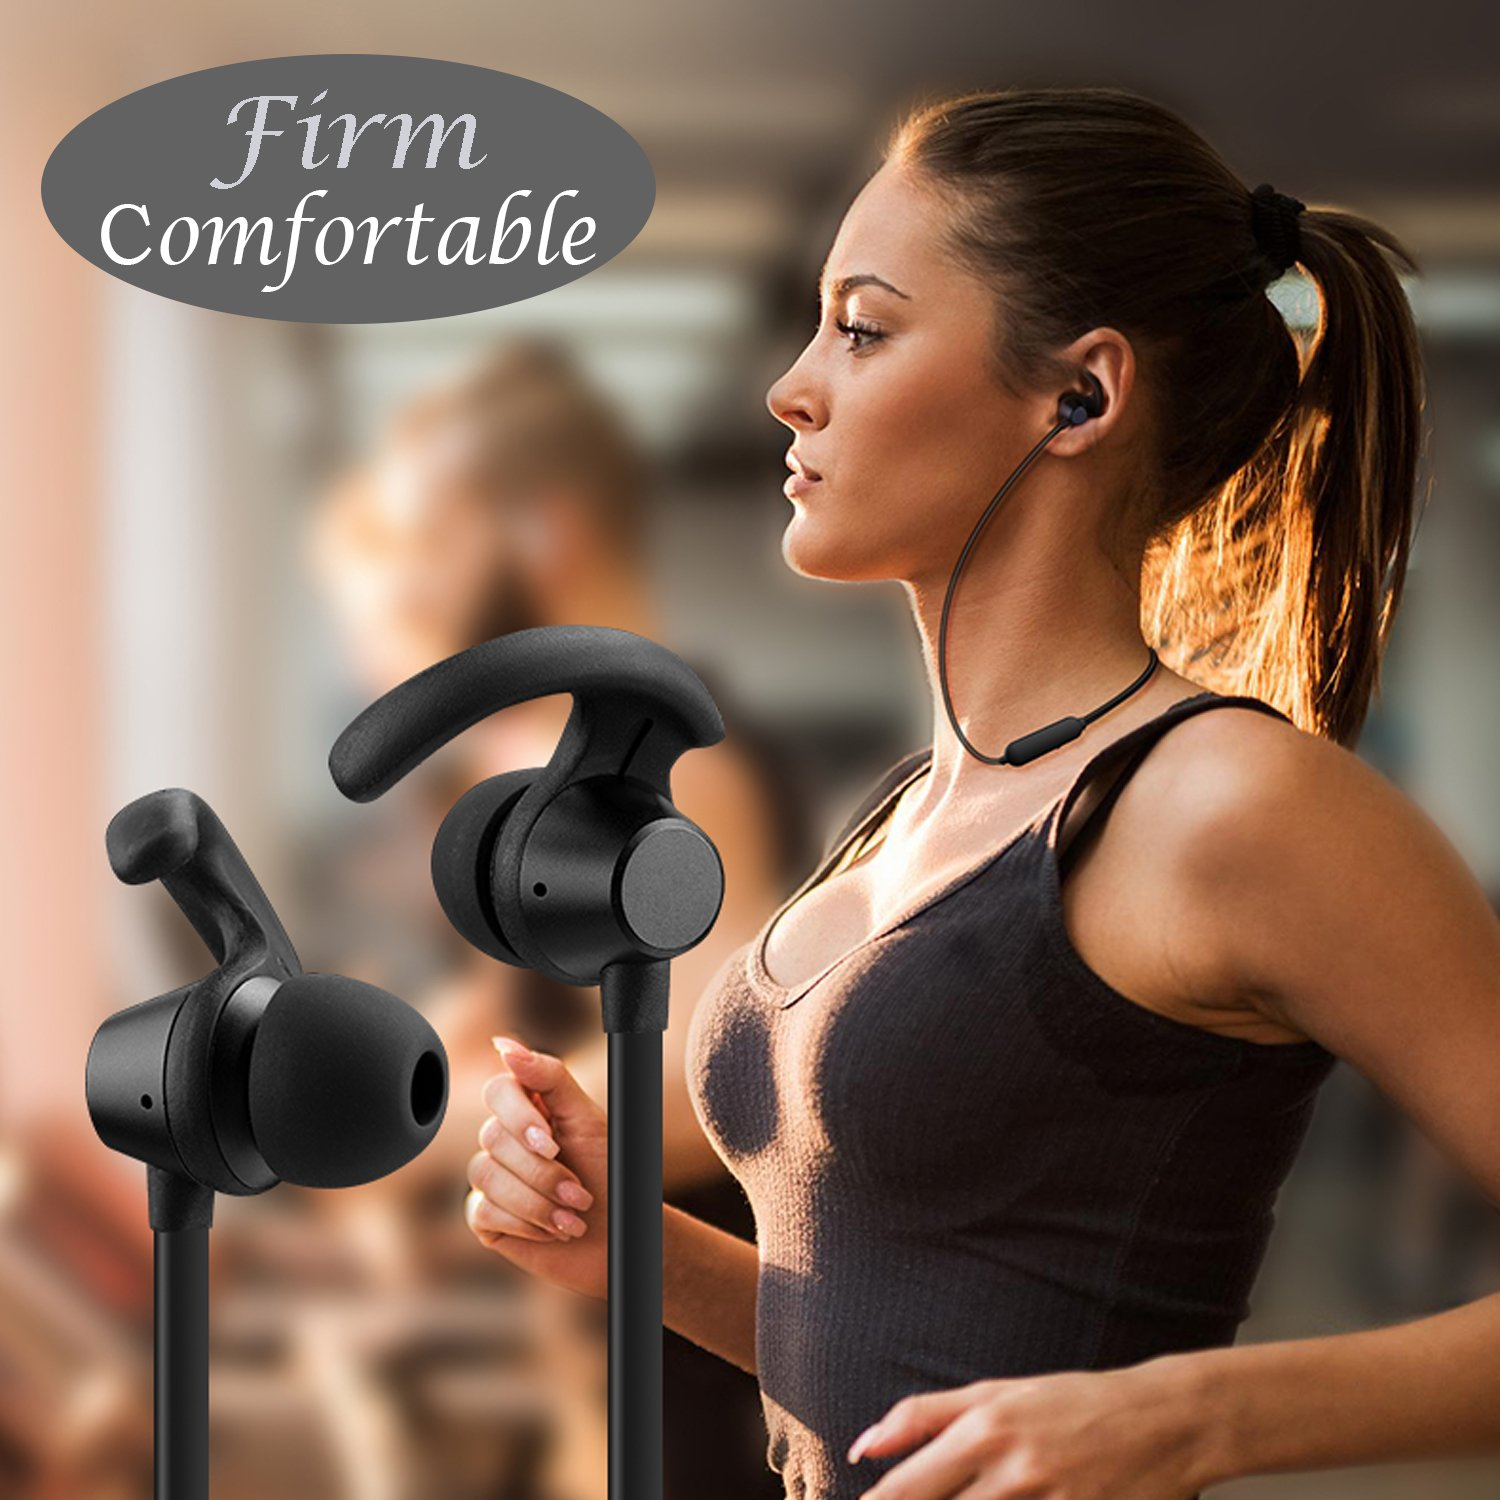 LJLB S39 Cordless Bluetooth Headphones In-Ear Neckband Headset with IPX5 Waterproof and Sweatproof Magnetic Earbuds for Running, The Best Sports Wireless Earphones w/Mic 10 Hours Playtime